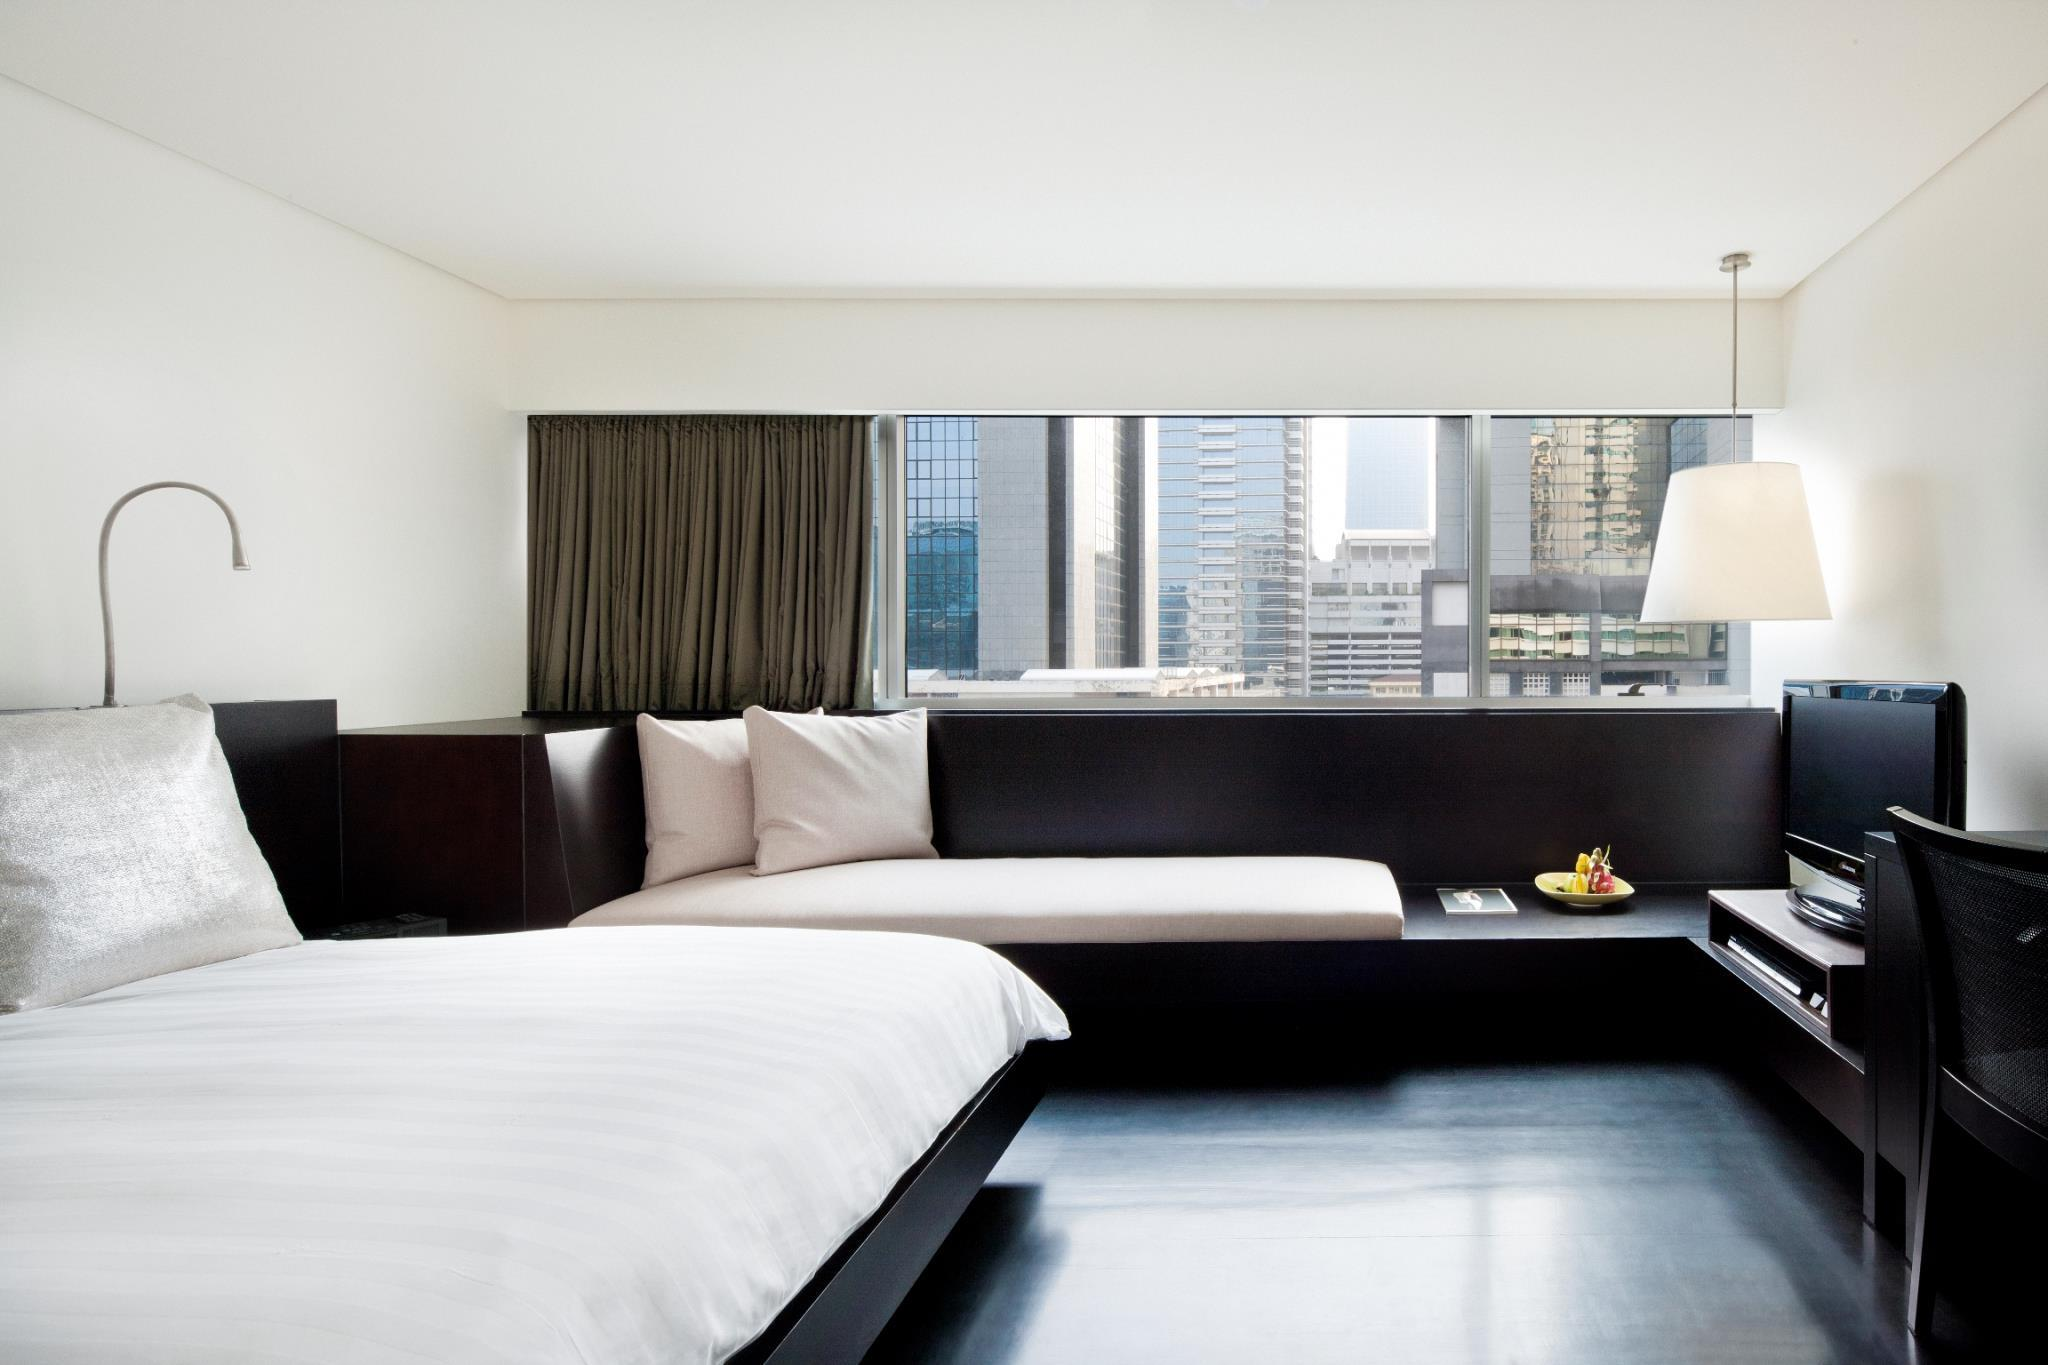 Kamar City (City Room)